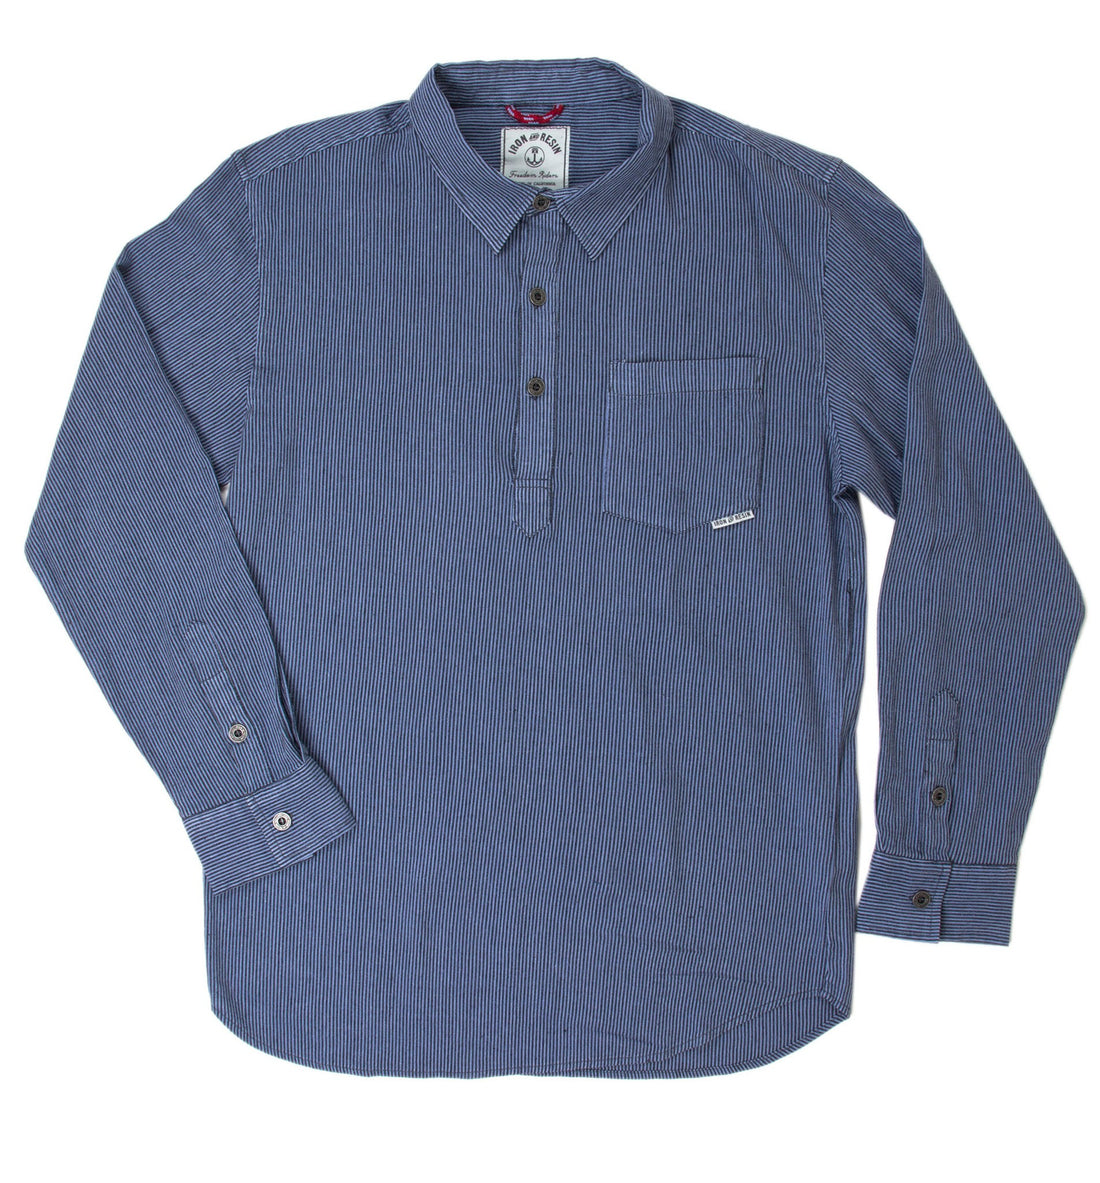 INR Shoal Shirt - Tops - Iron and Resin